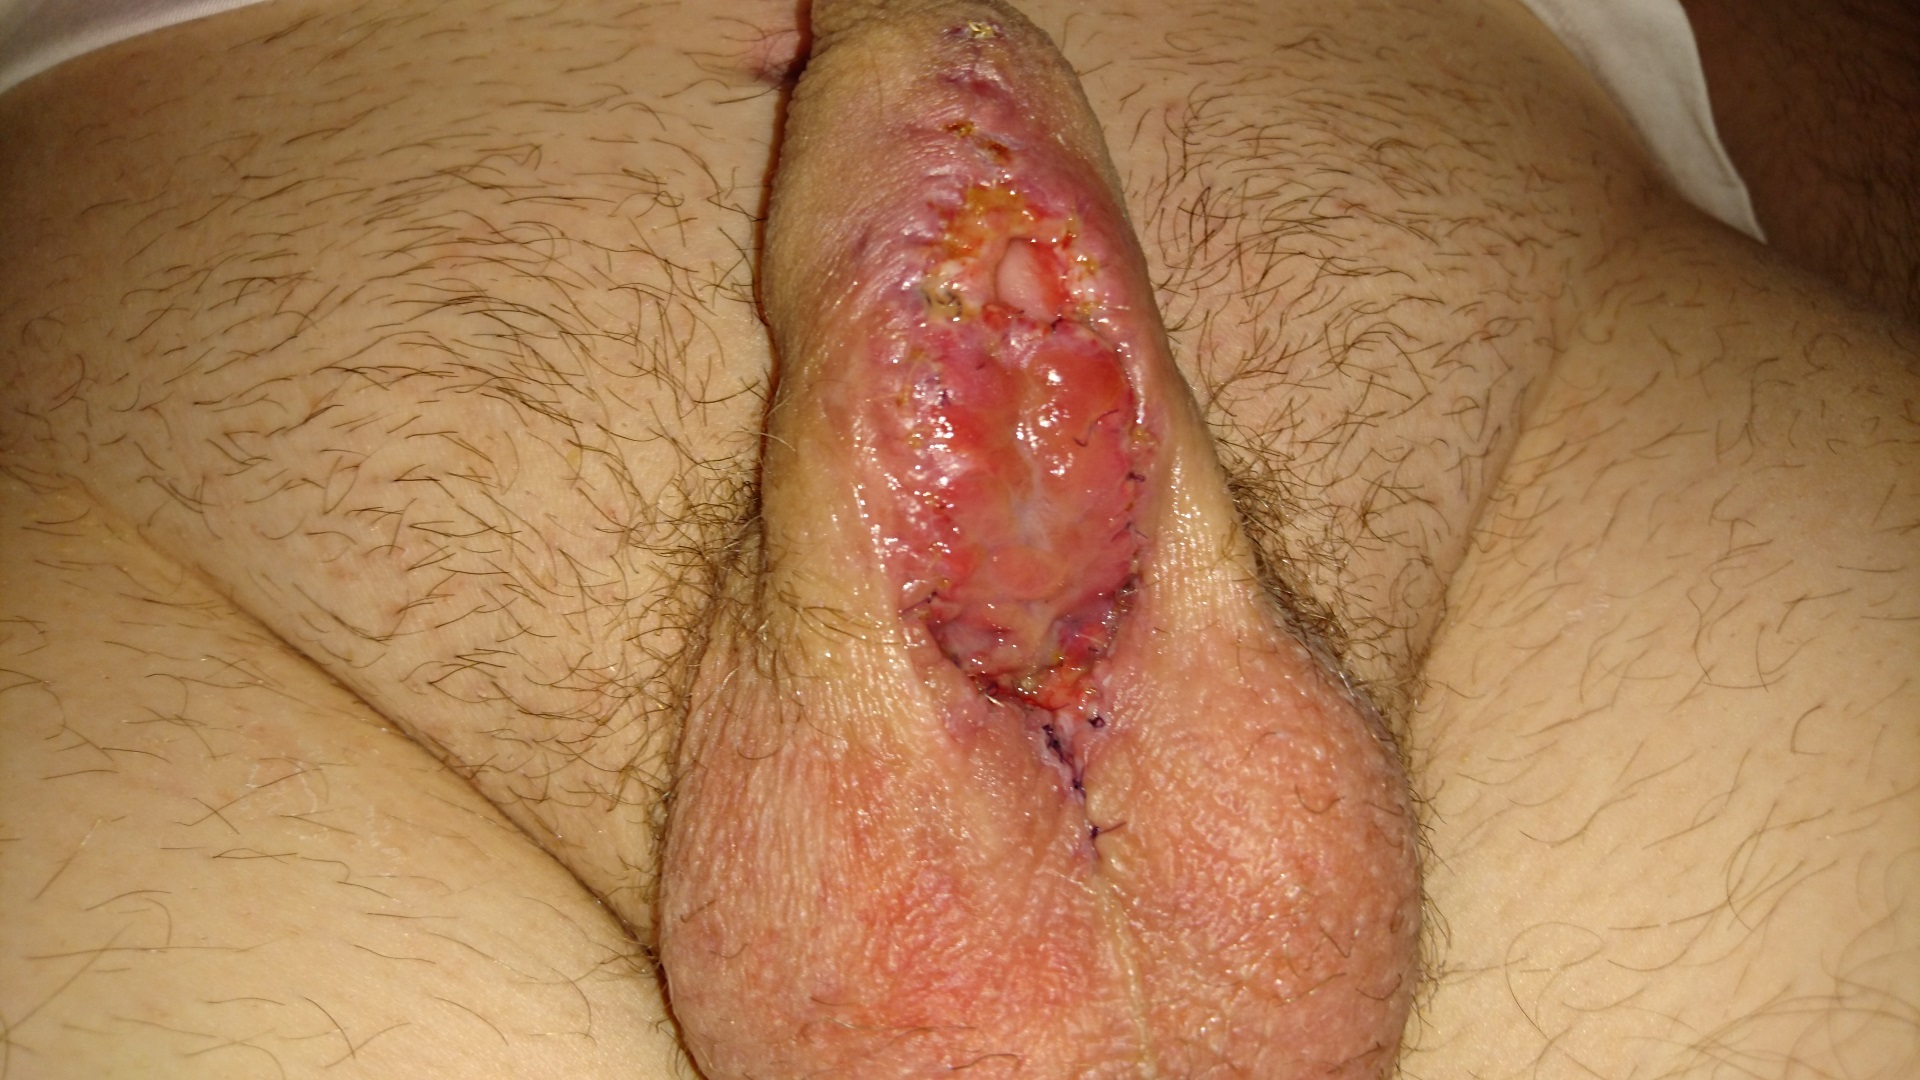 On the penis appeared small pimples